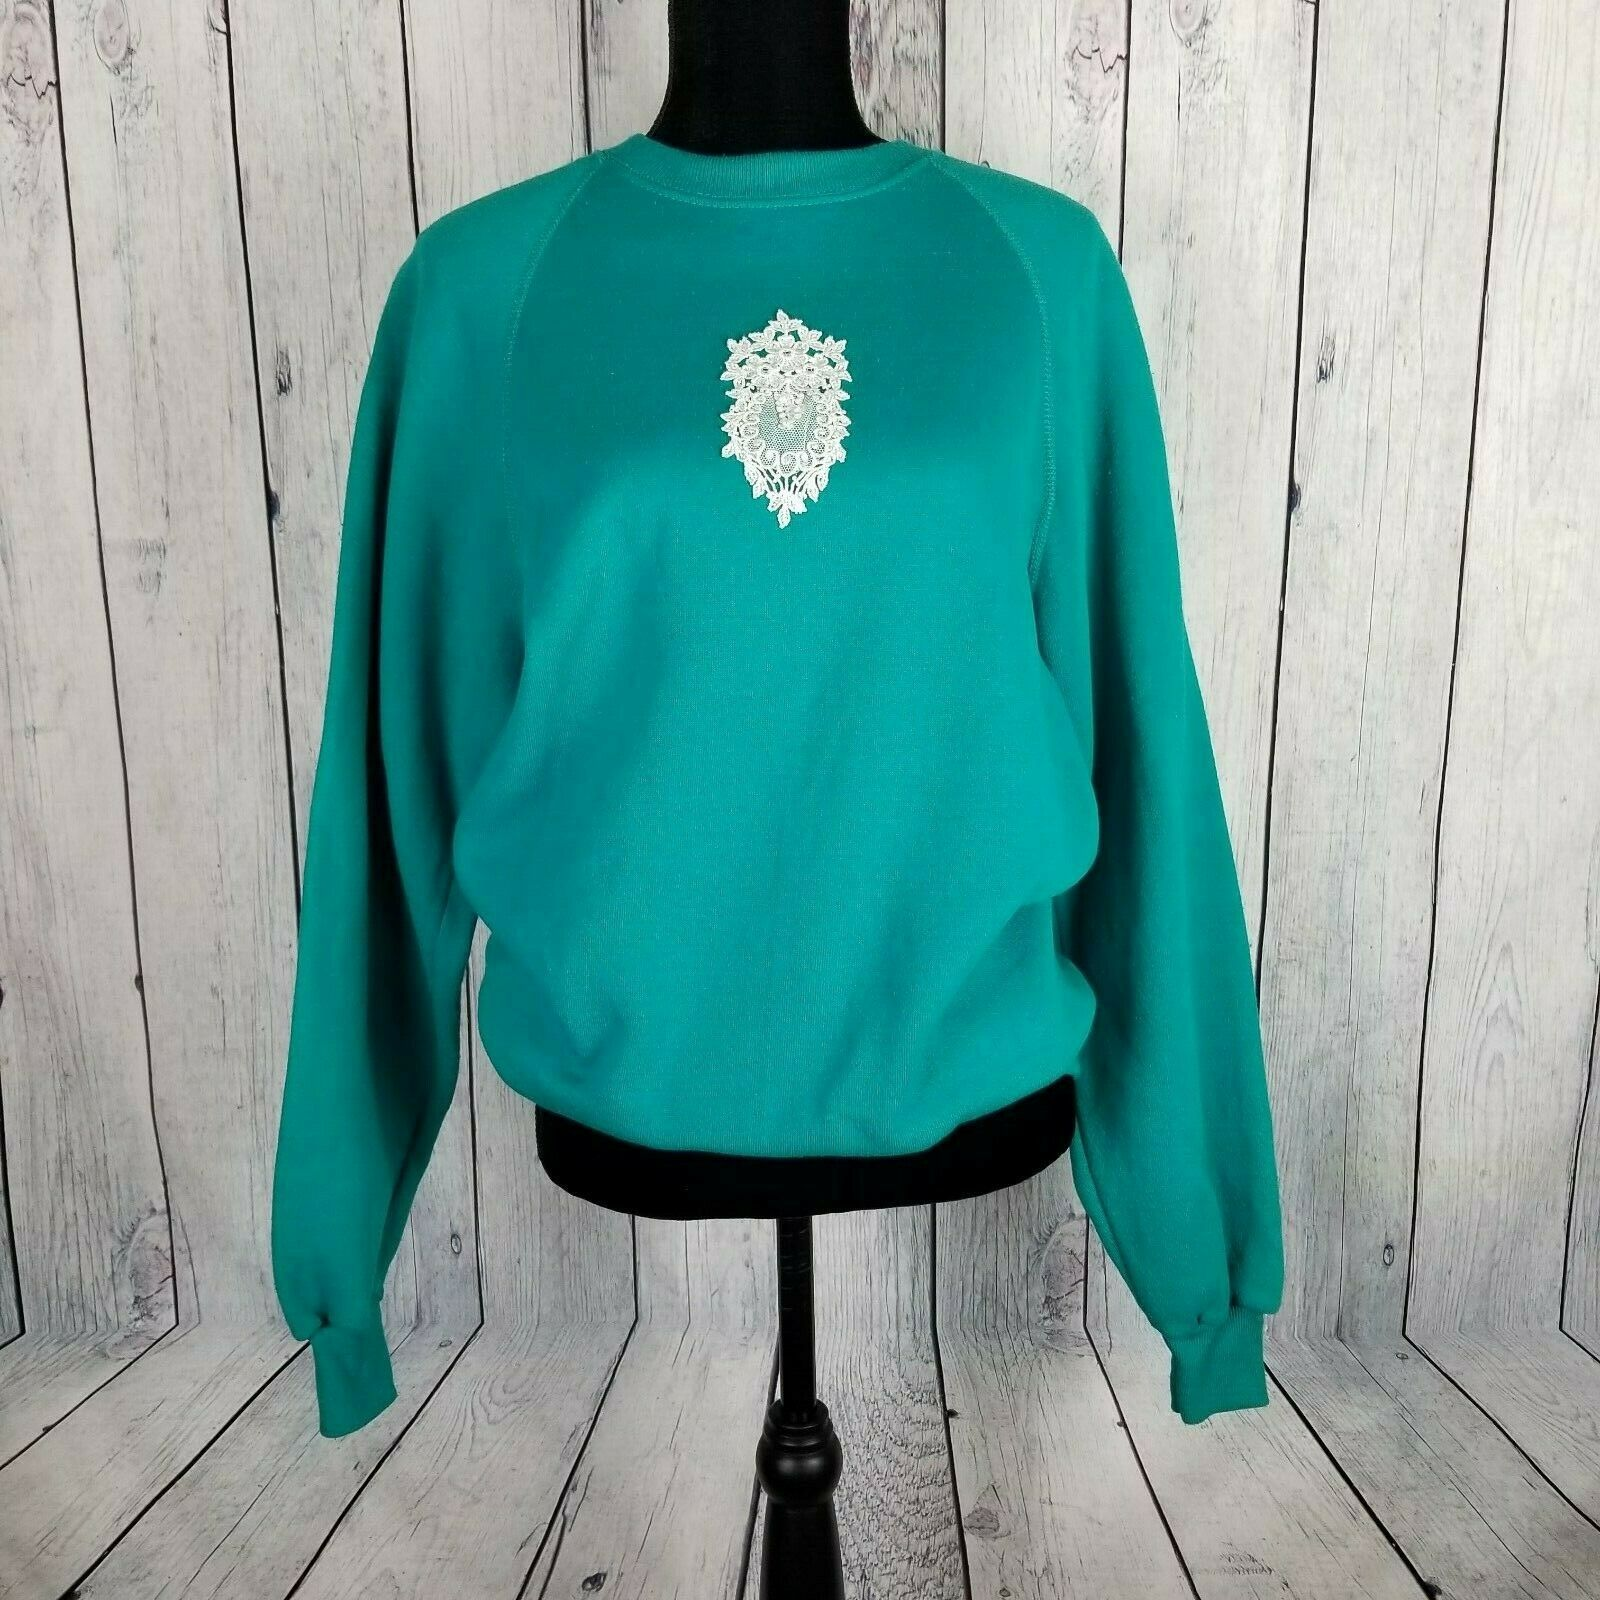 Sturdy Sweats By Lee Teal Textured Sweatshirt Large Vintage Lace Applique image 2